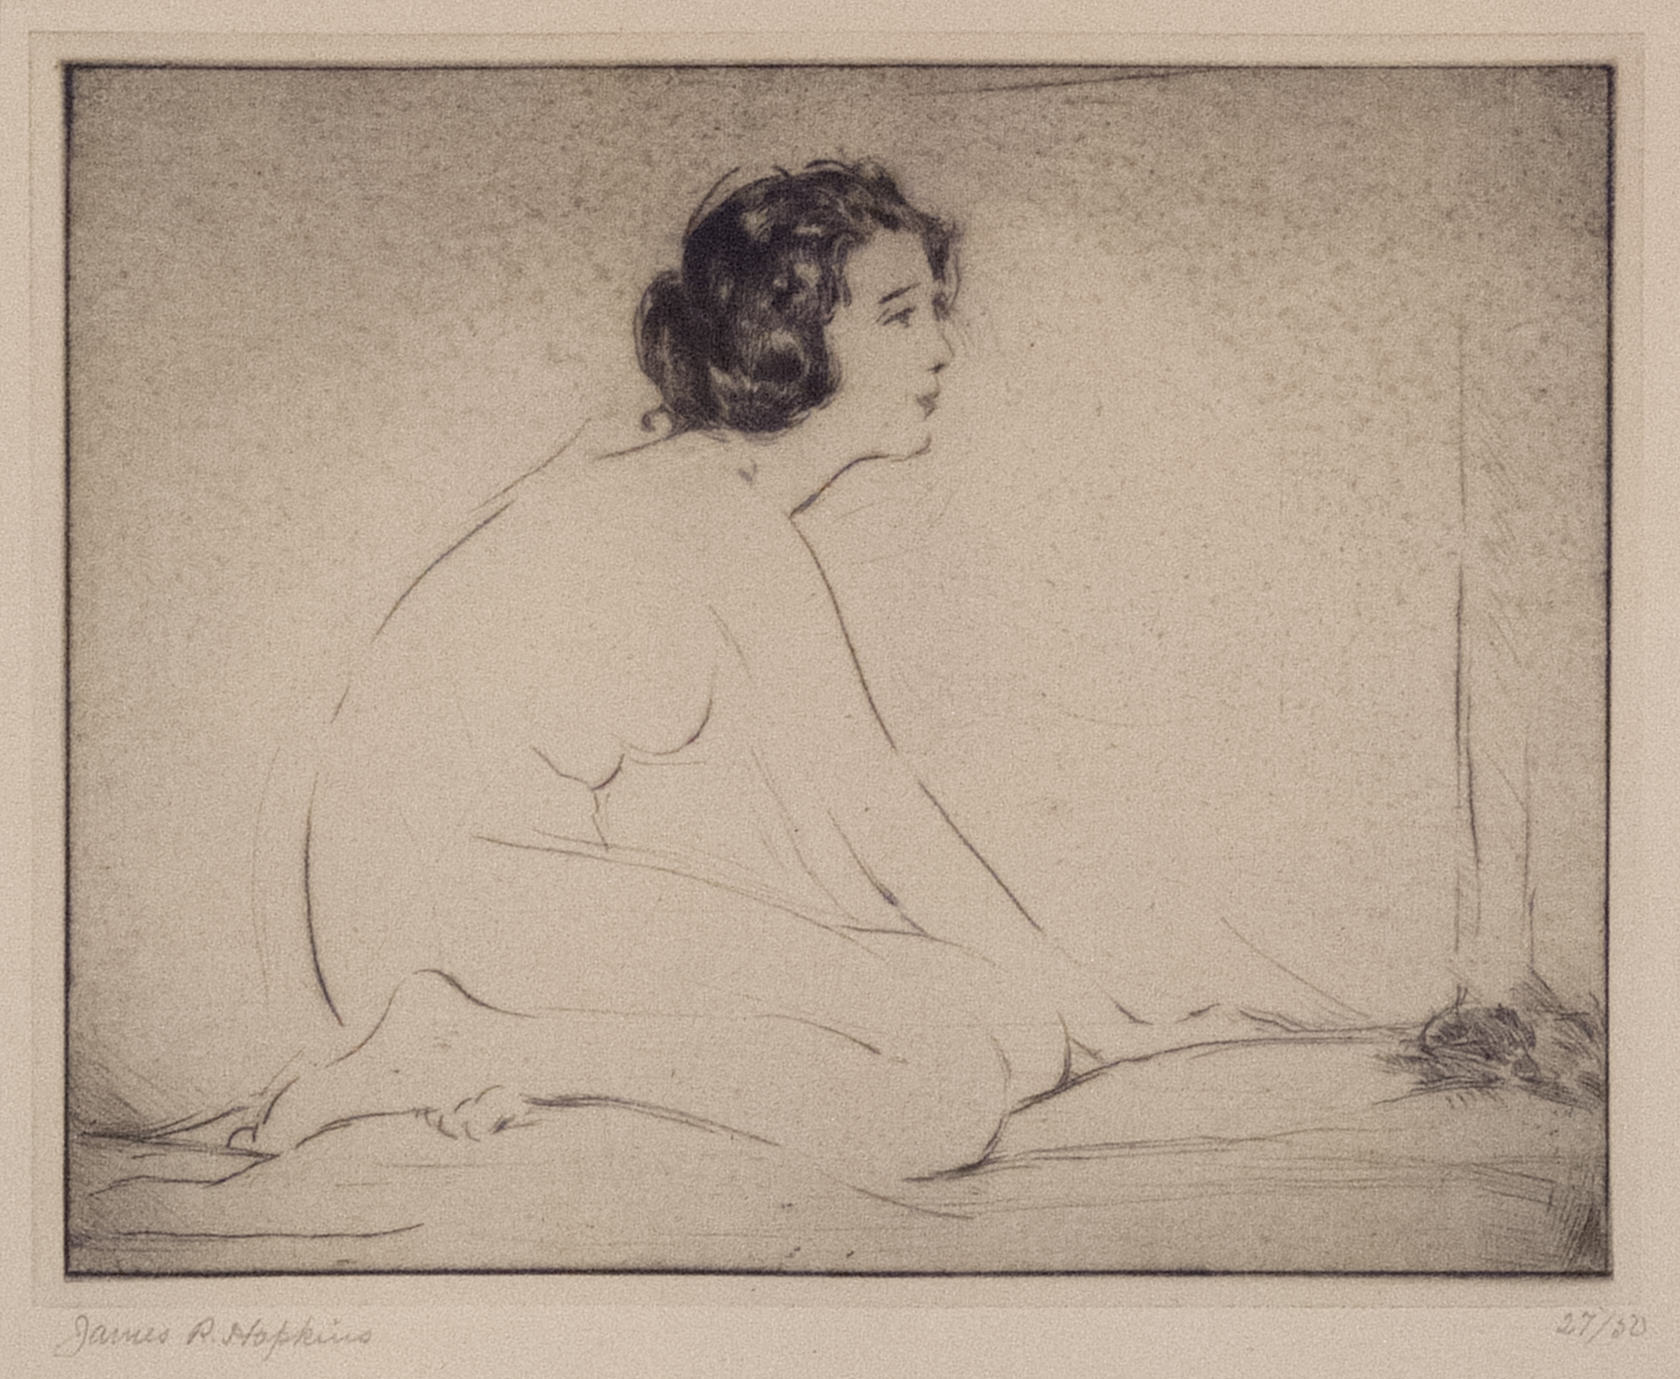 James R. Hopkins | LYRIC (KNEELING NUDE FACING RIGHT) | etching | 6-1/4 x 7-3/4"